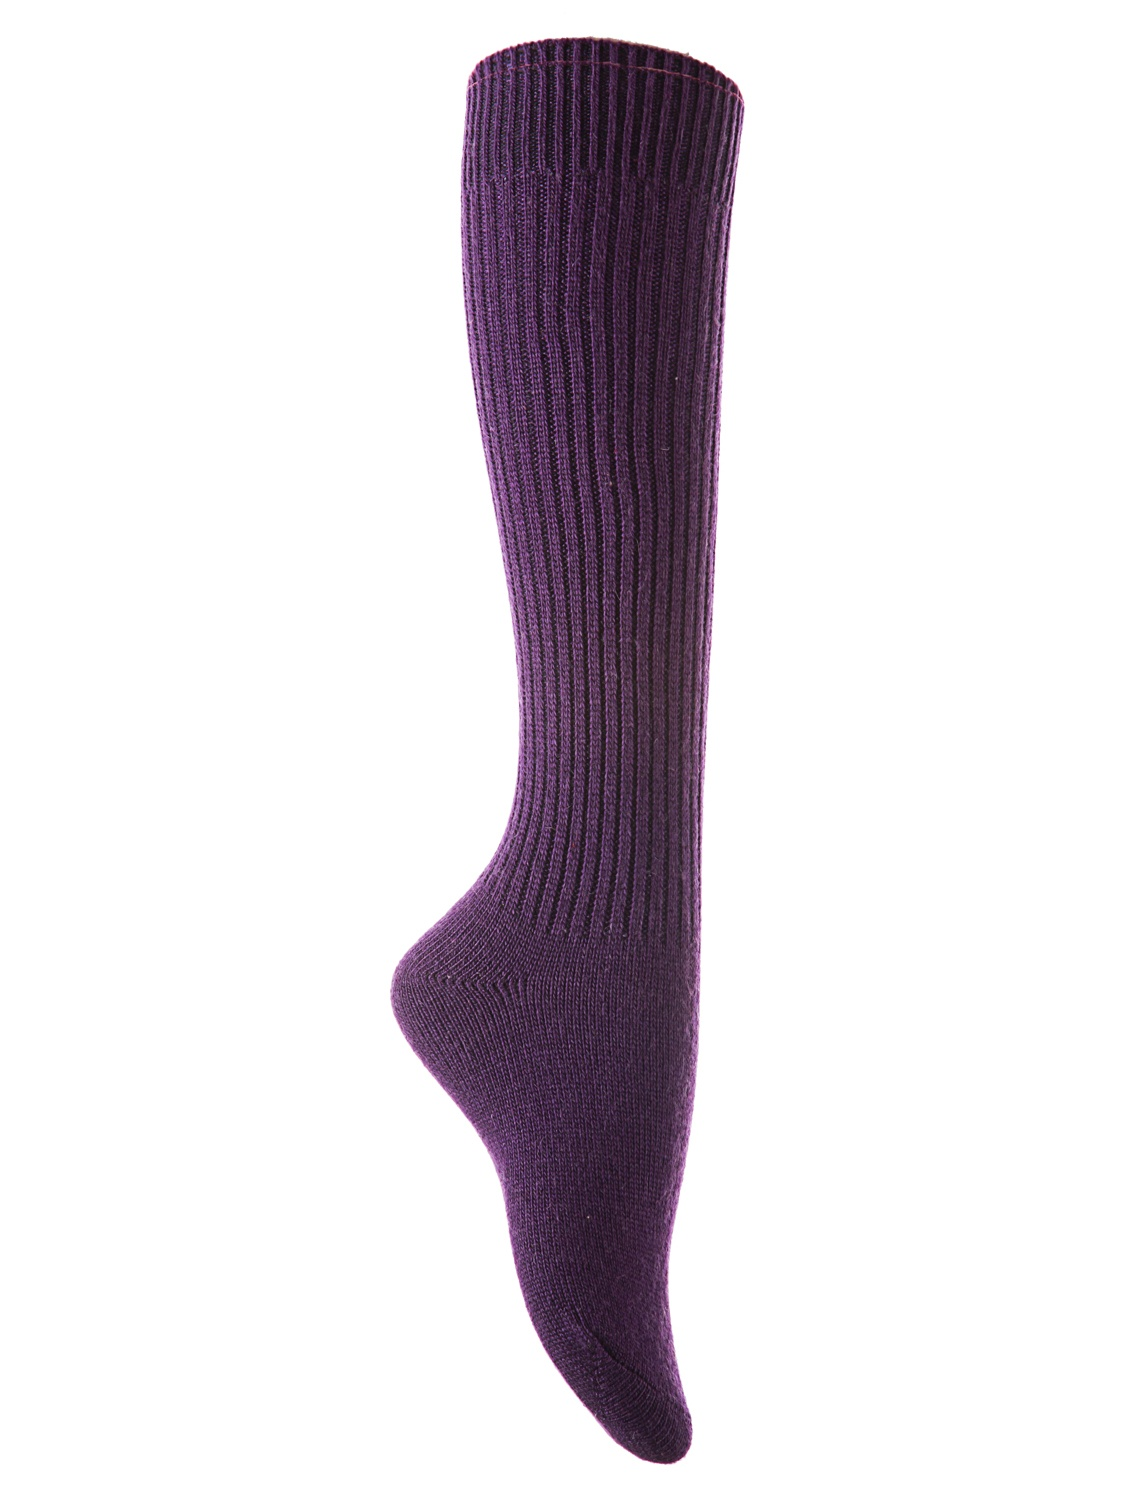 Lian Style Big Girl's 4 Pairs Knee-high Knitted Wool Socks Stripped FS05 Size 6-9(Assorted)